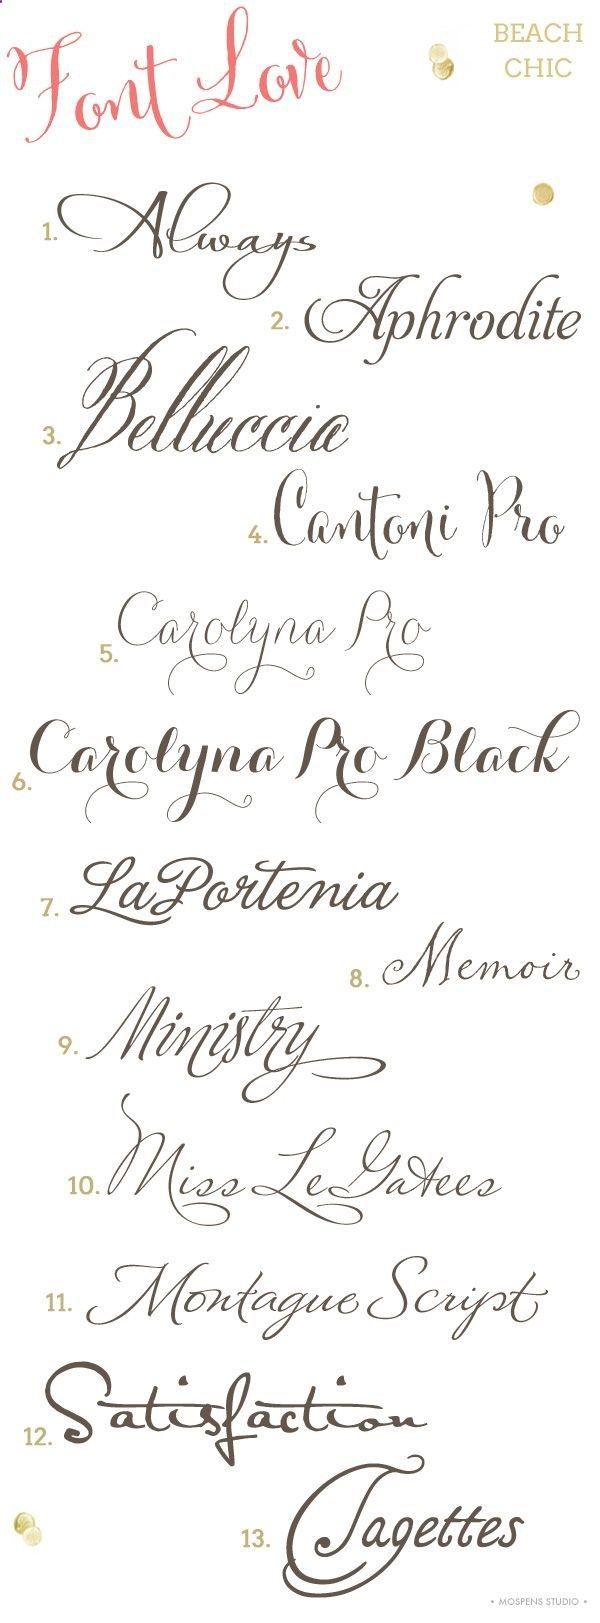 Beach wedding invitation fonts | Wedding invitation fonts, Beach ...